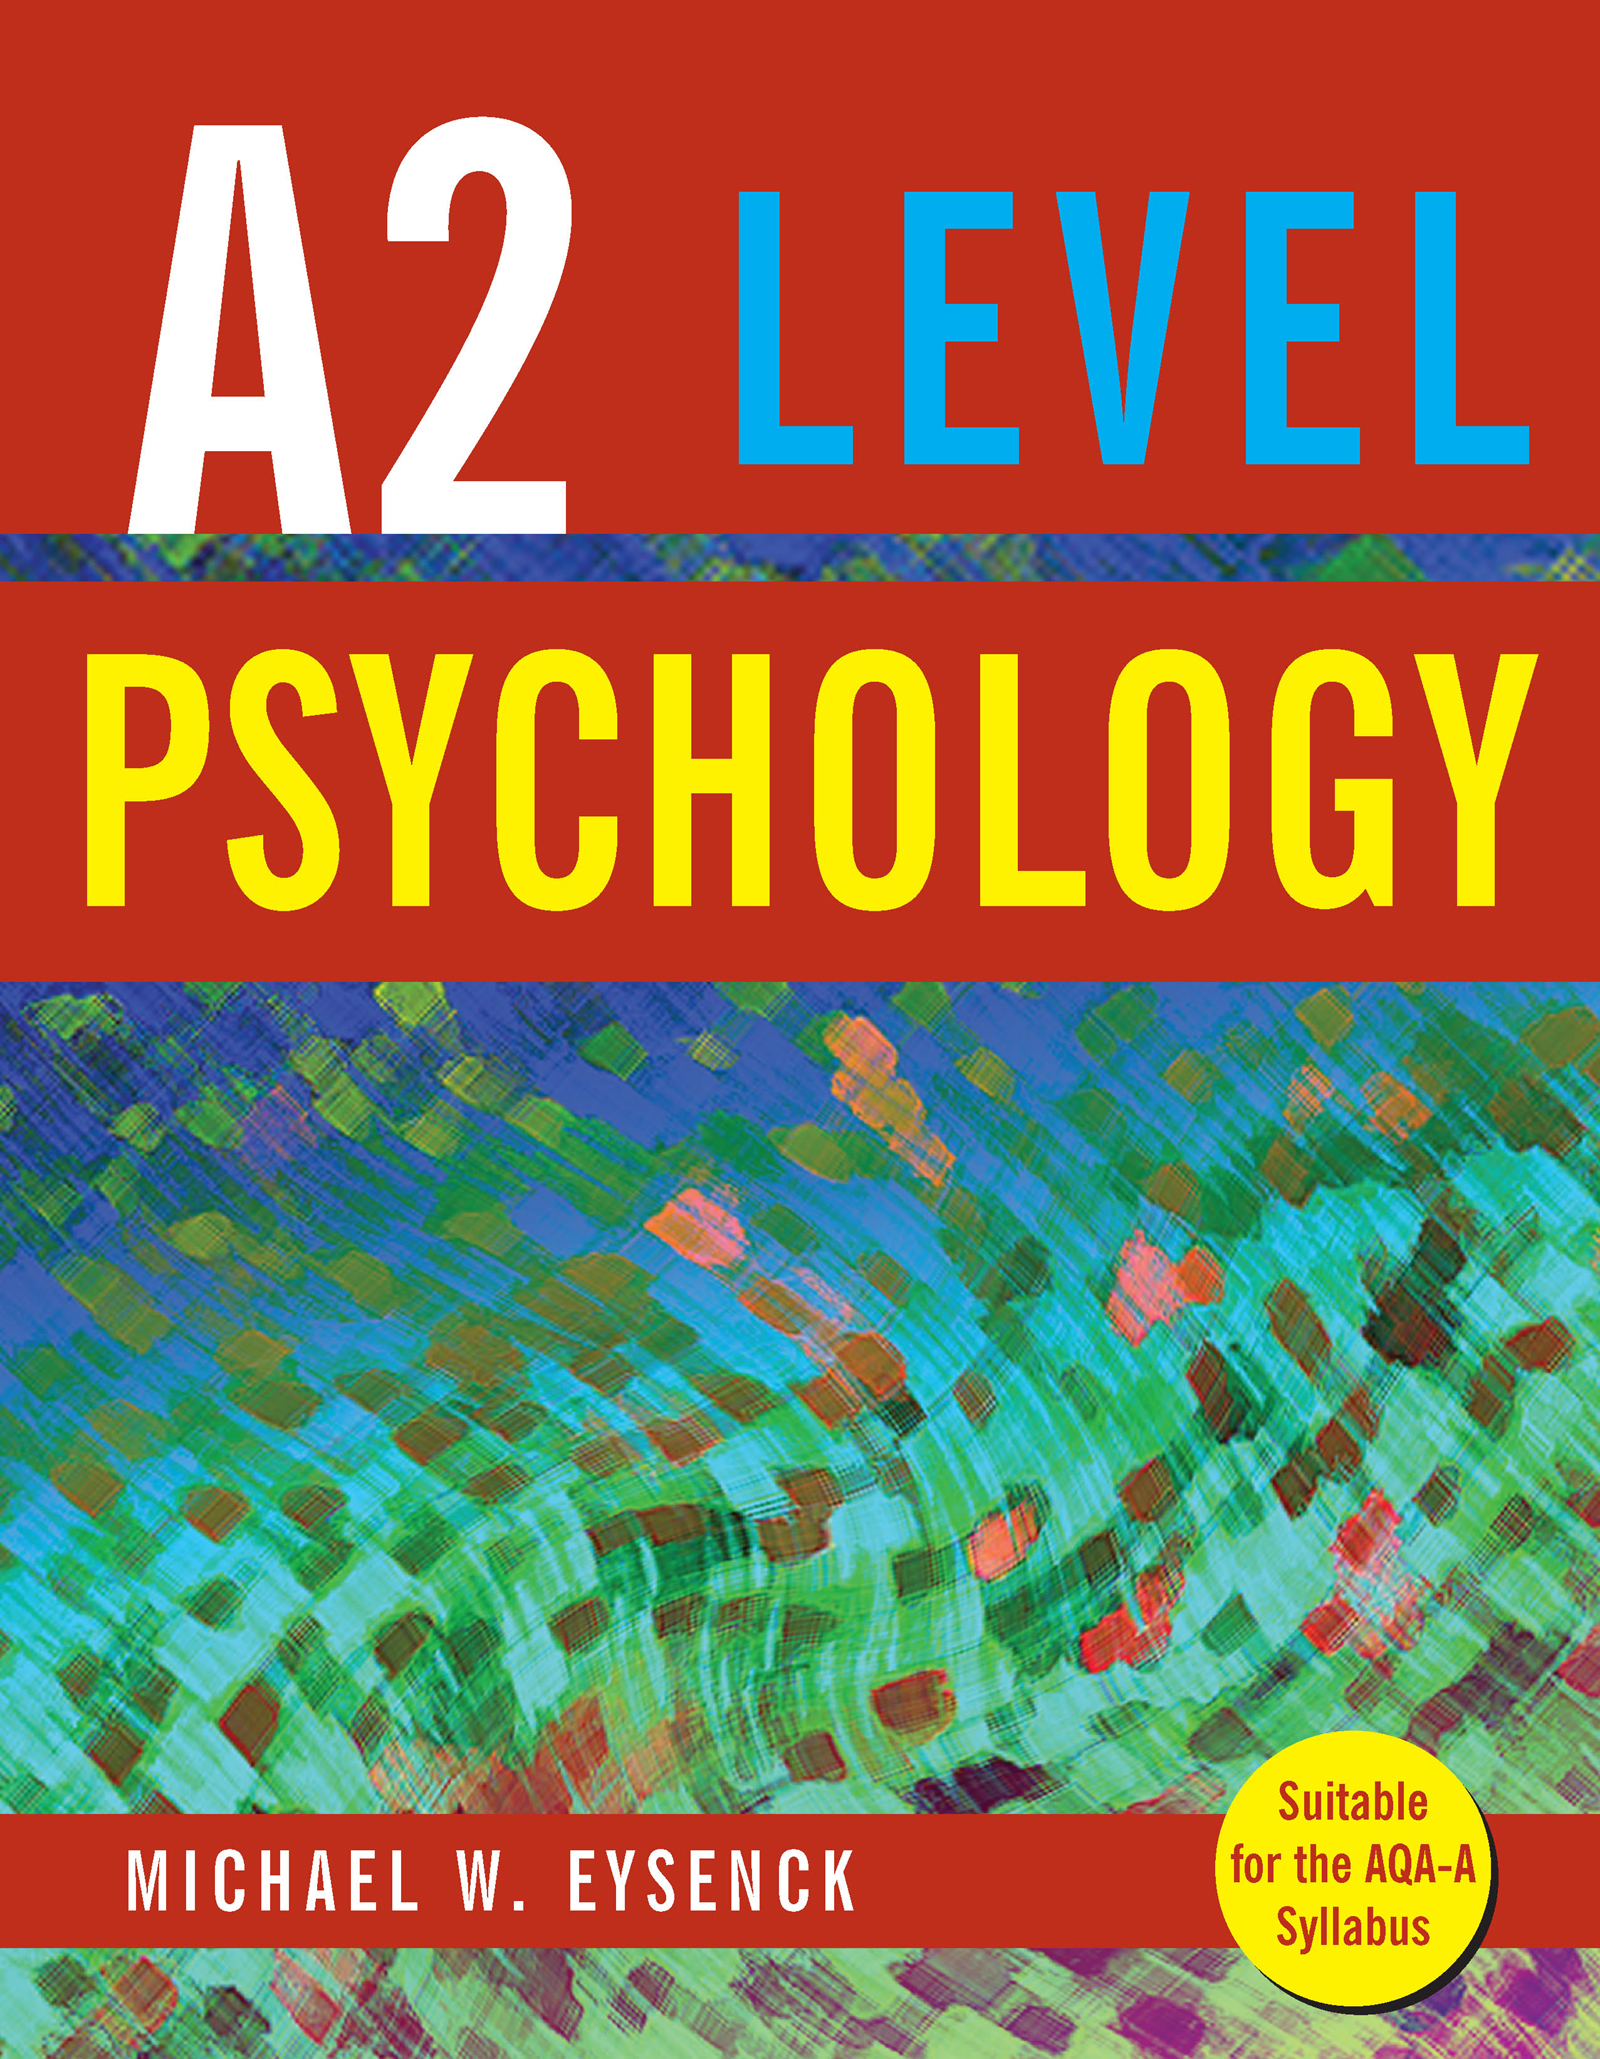 A2 Level Psychology (Paperback) book cover